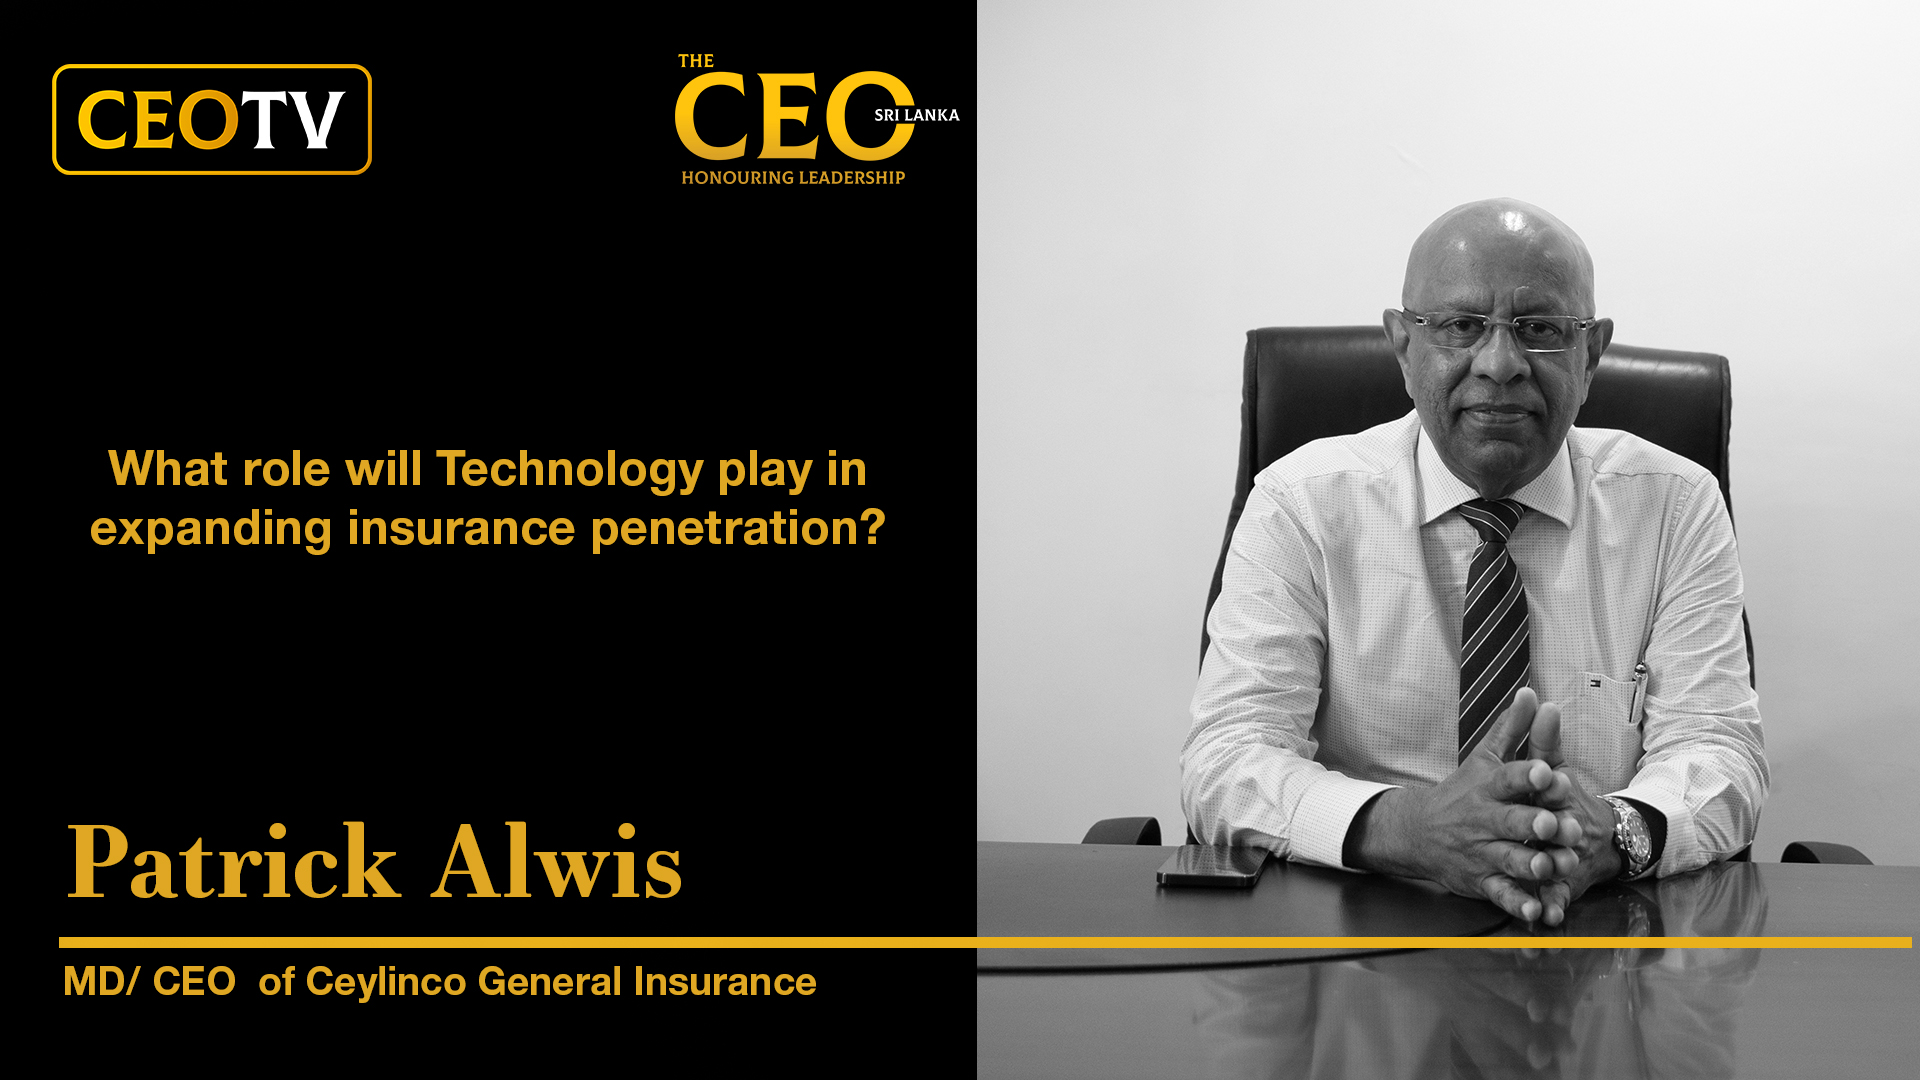 CEO TV – An interview with Mr. Patrick Alwis , the CEO/ MD of Ceylinco General Insurance